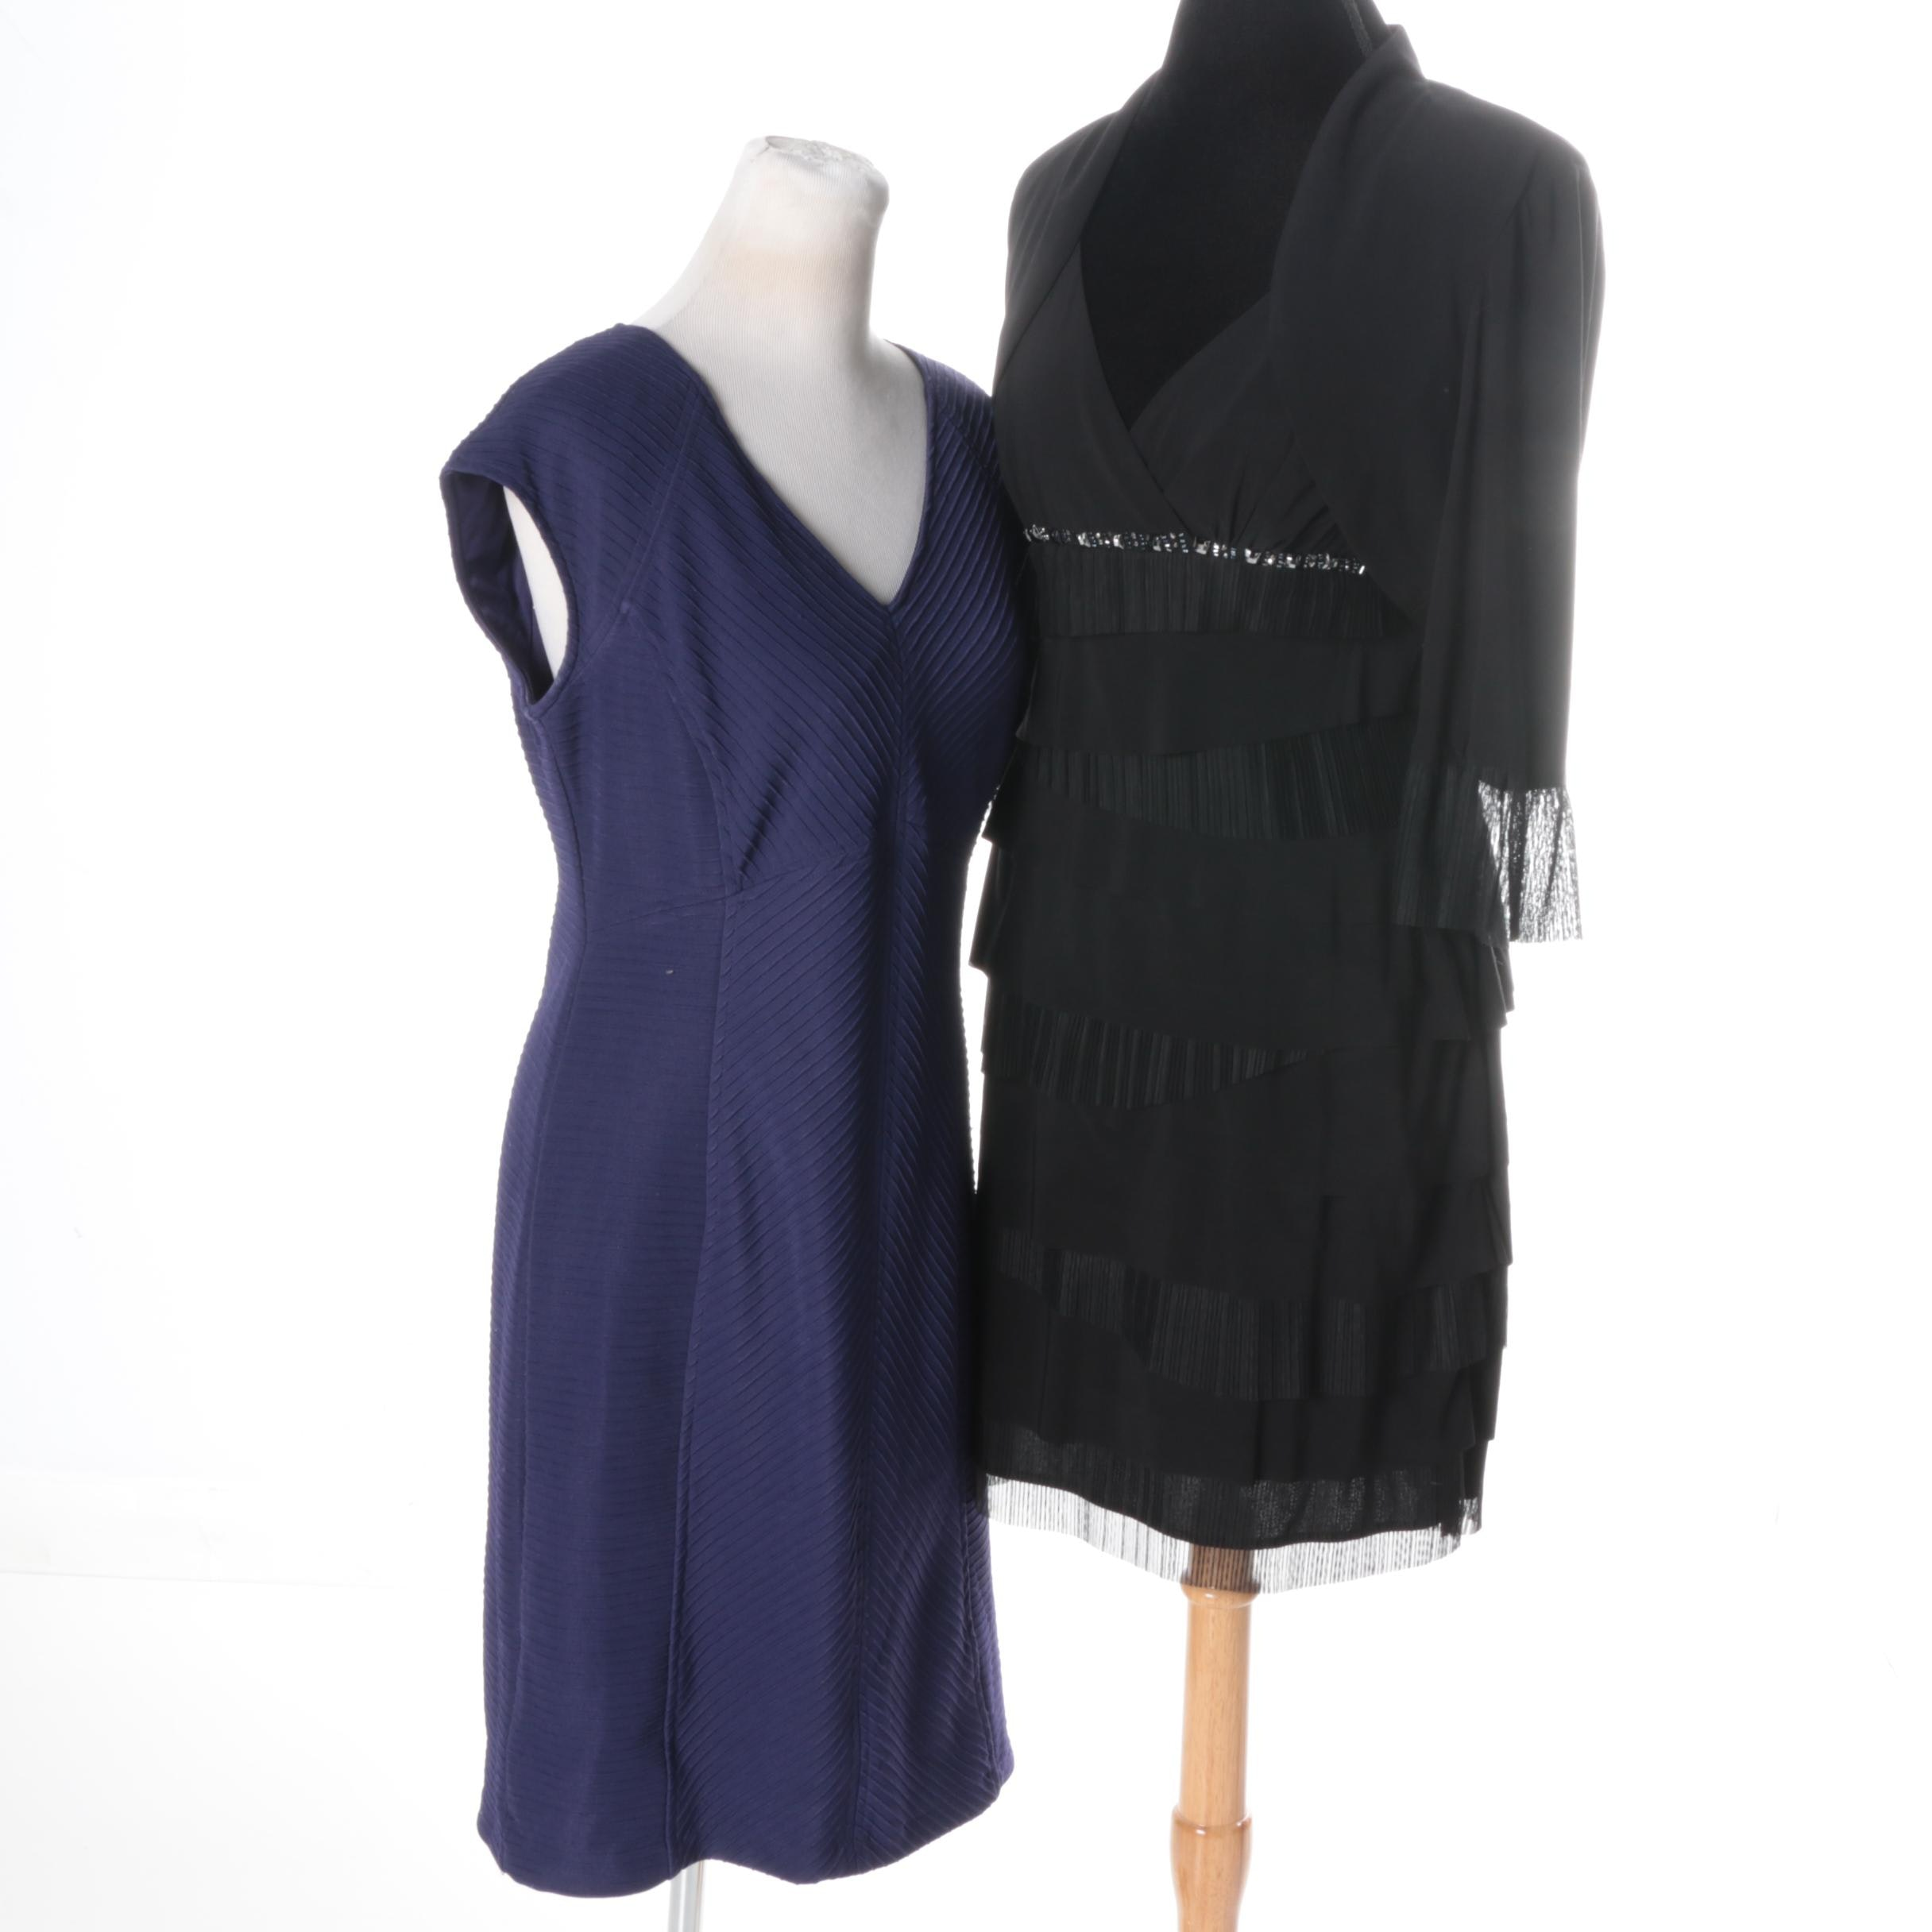 Women's Cocktail Dresses and Two-Piece